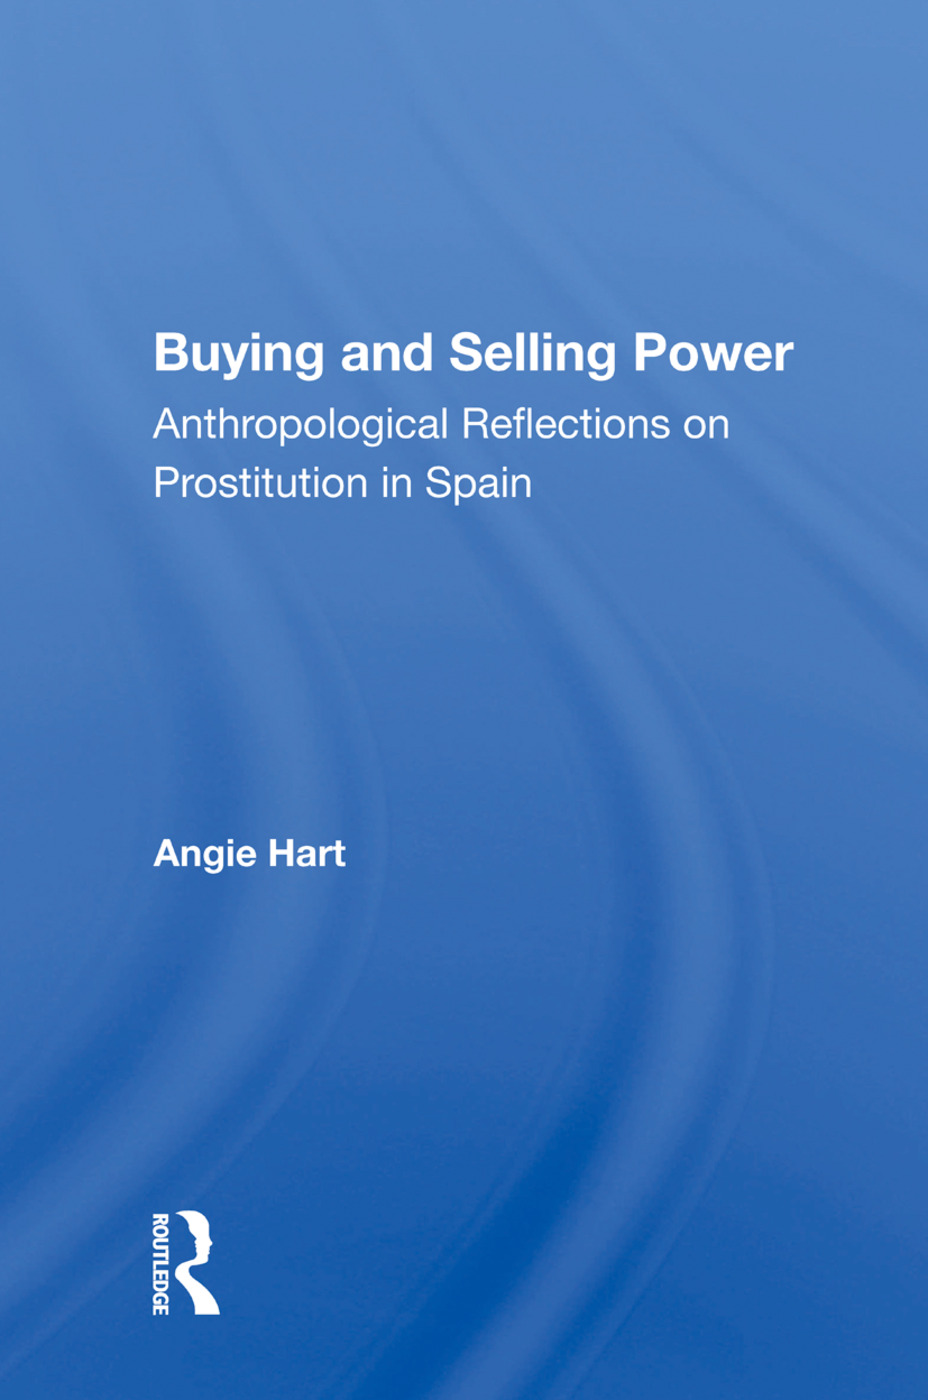 Buying And Selling Power: Anthropological Reflections On Prostitution In Spain, 1st Edition (Paperback) book cover